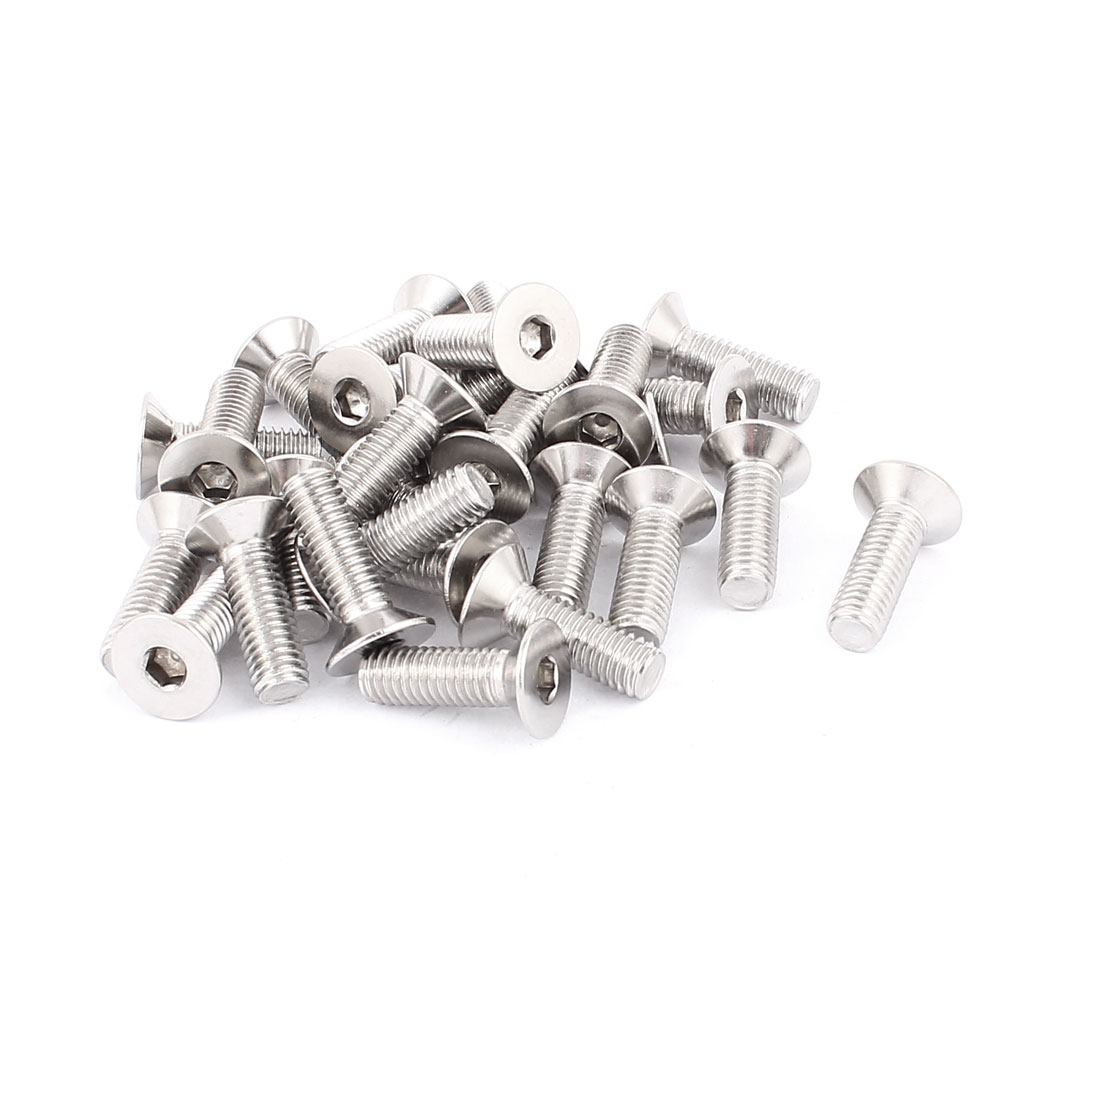 30 Pcs M8 Stainless Steel Countersunk Flat Head Hex Socket Screw Bolt DIN 7991